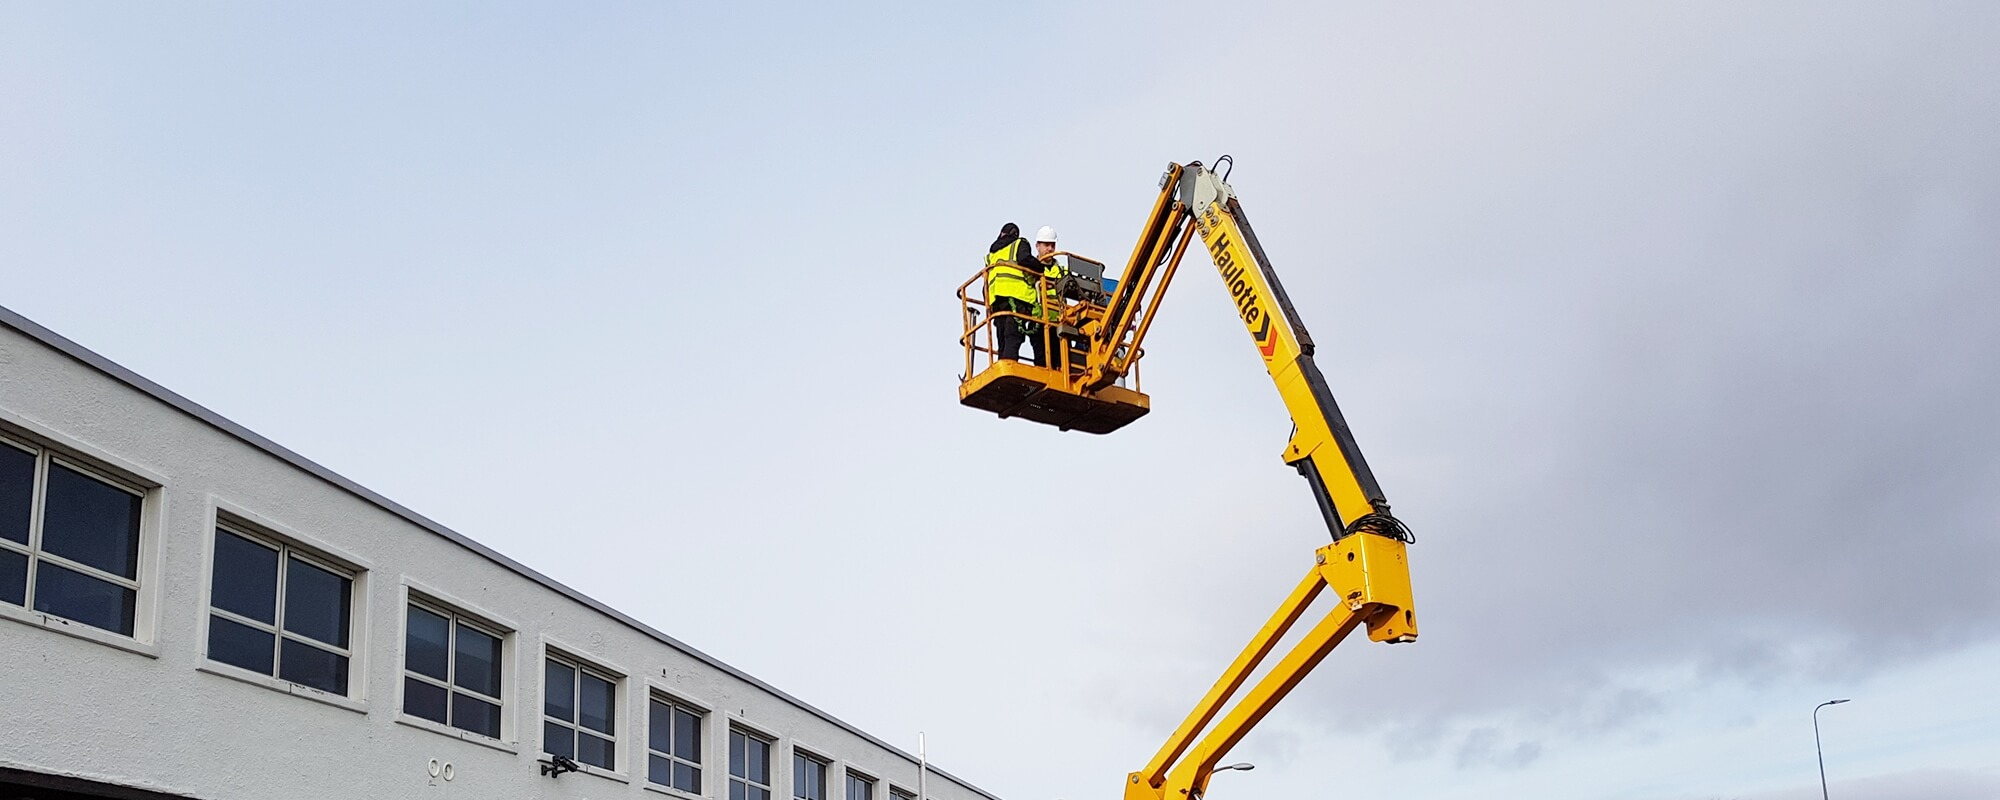 COMMERCIAL CLEANING & WORKING AT HEIGHT